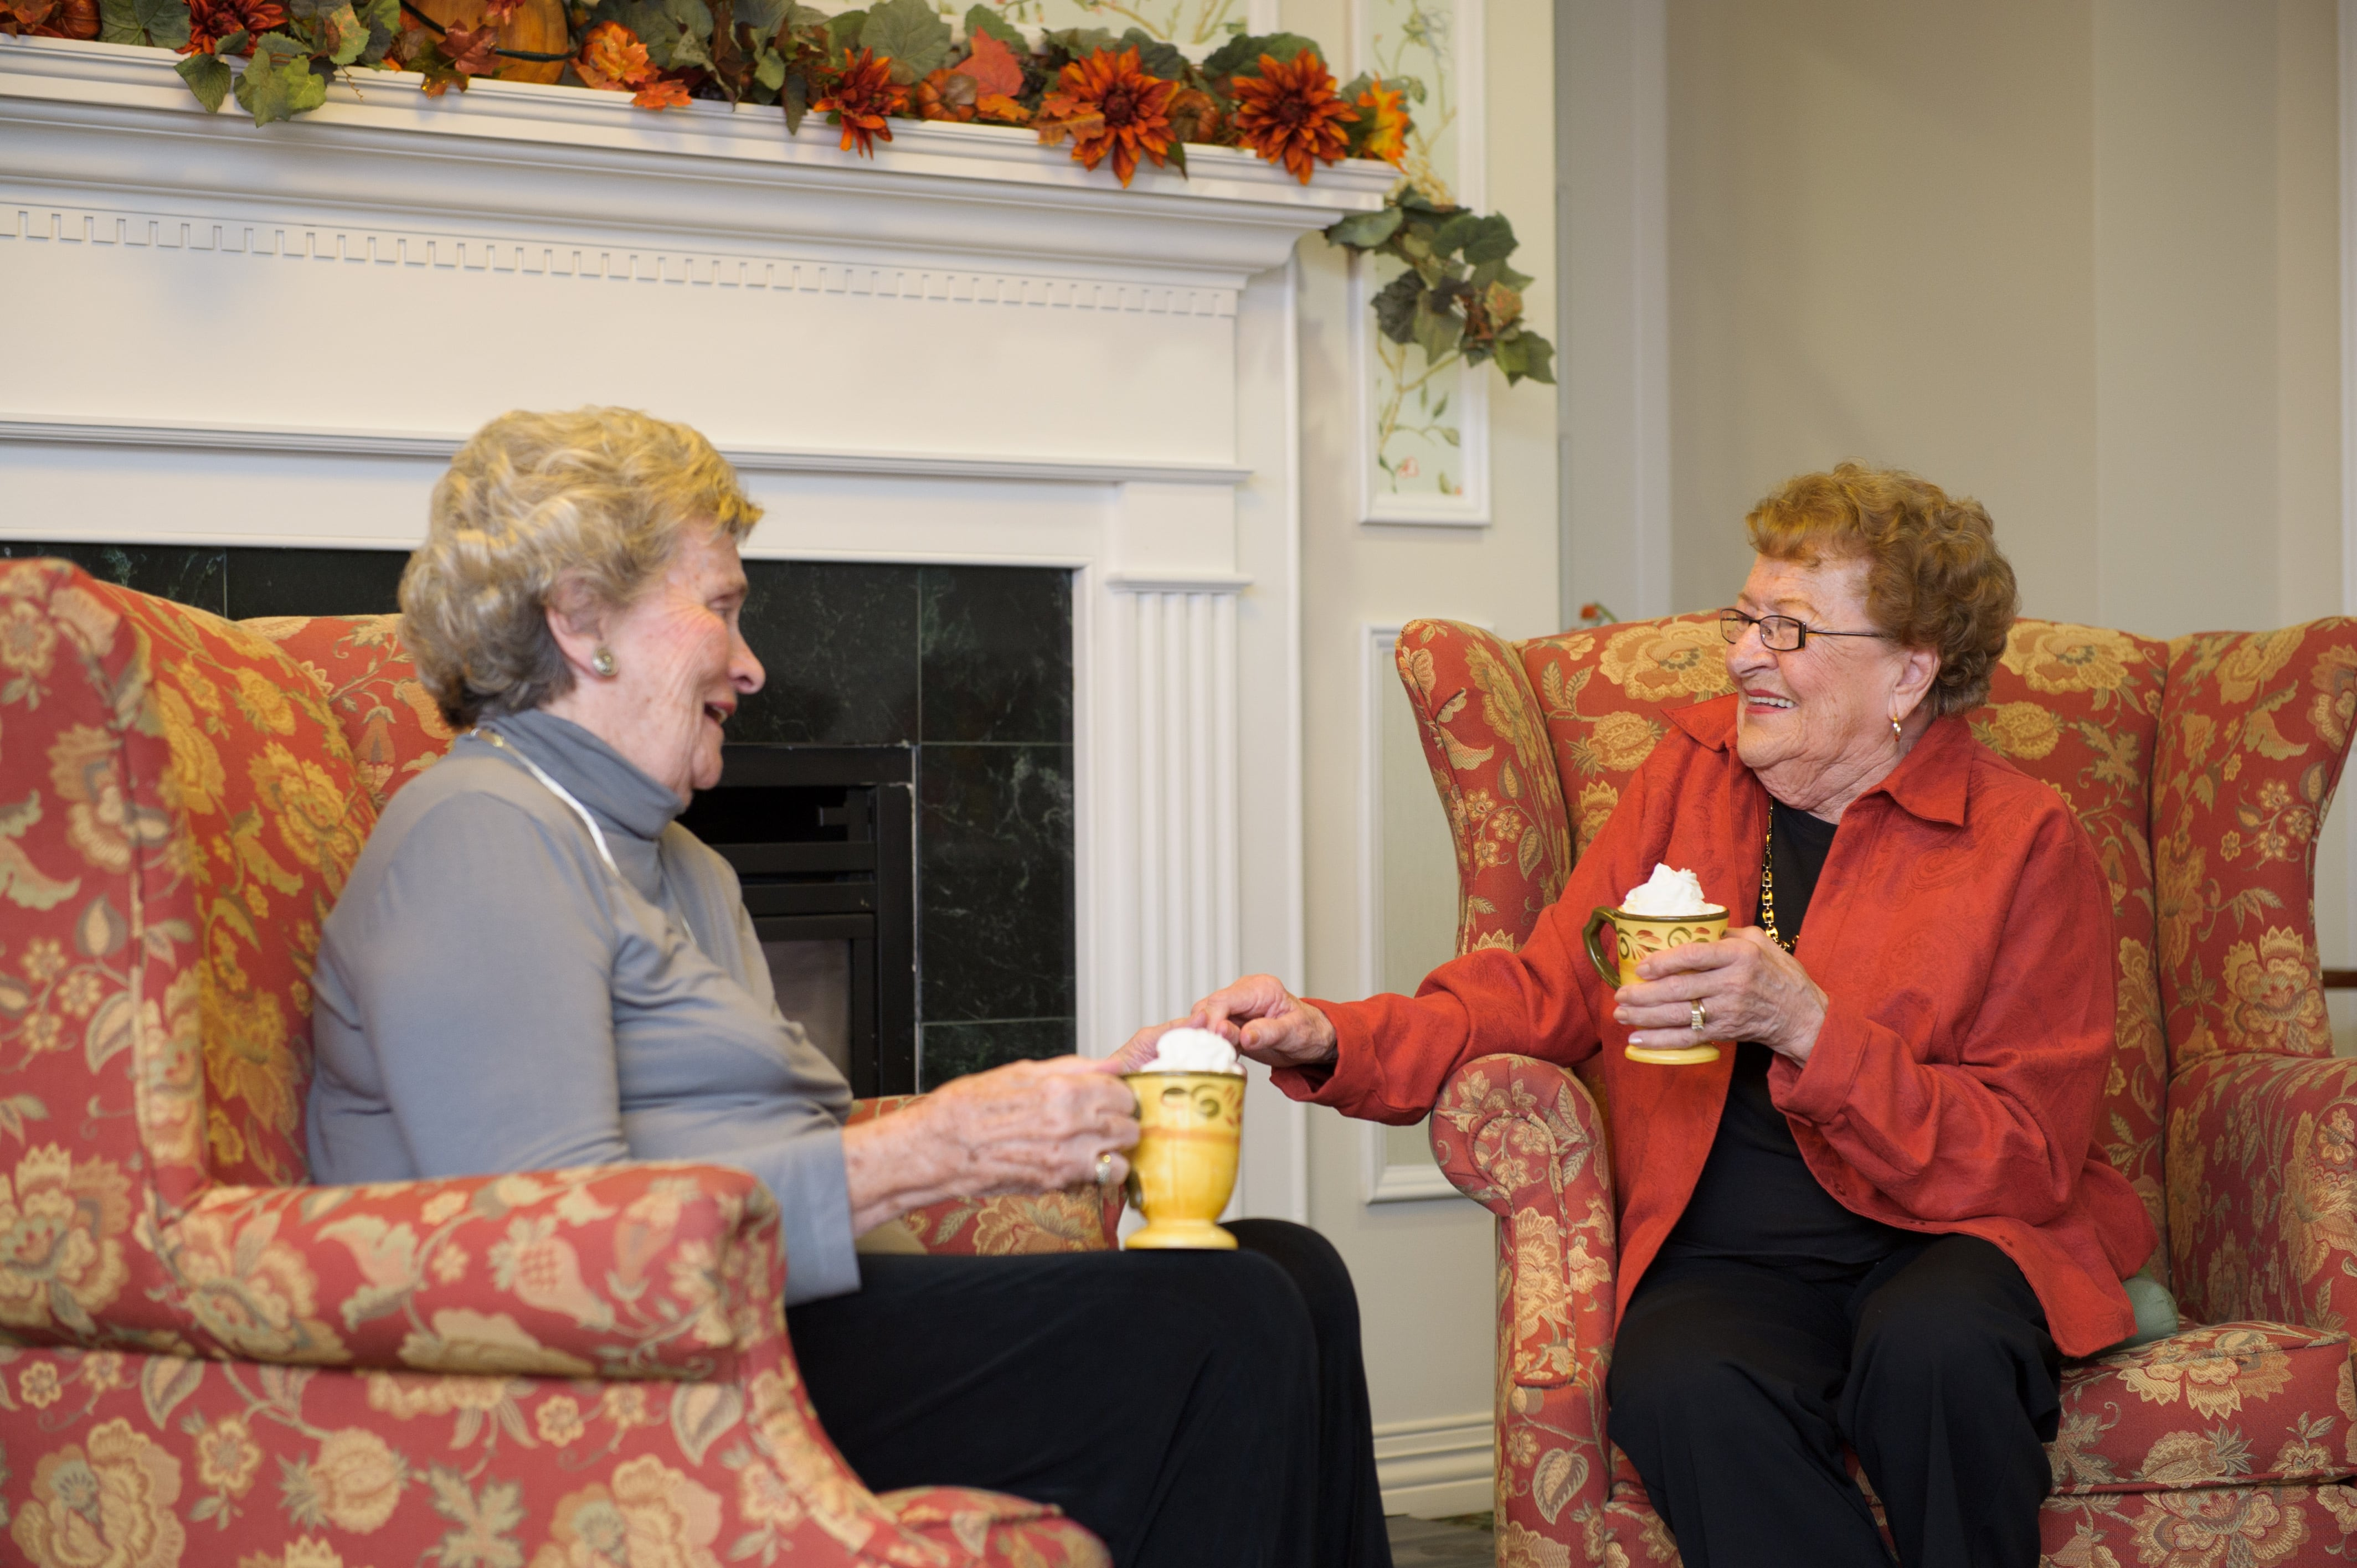 home is NOT Always Better for Older Adults